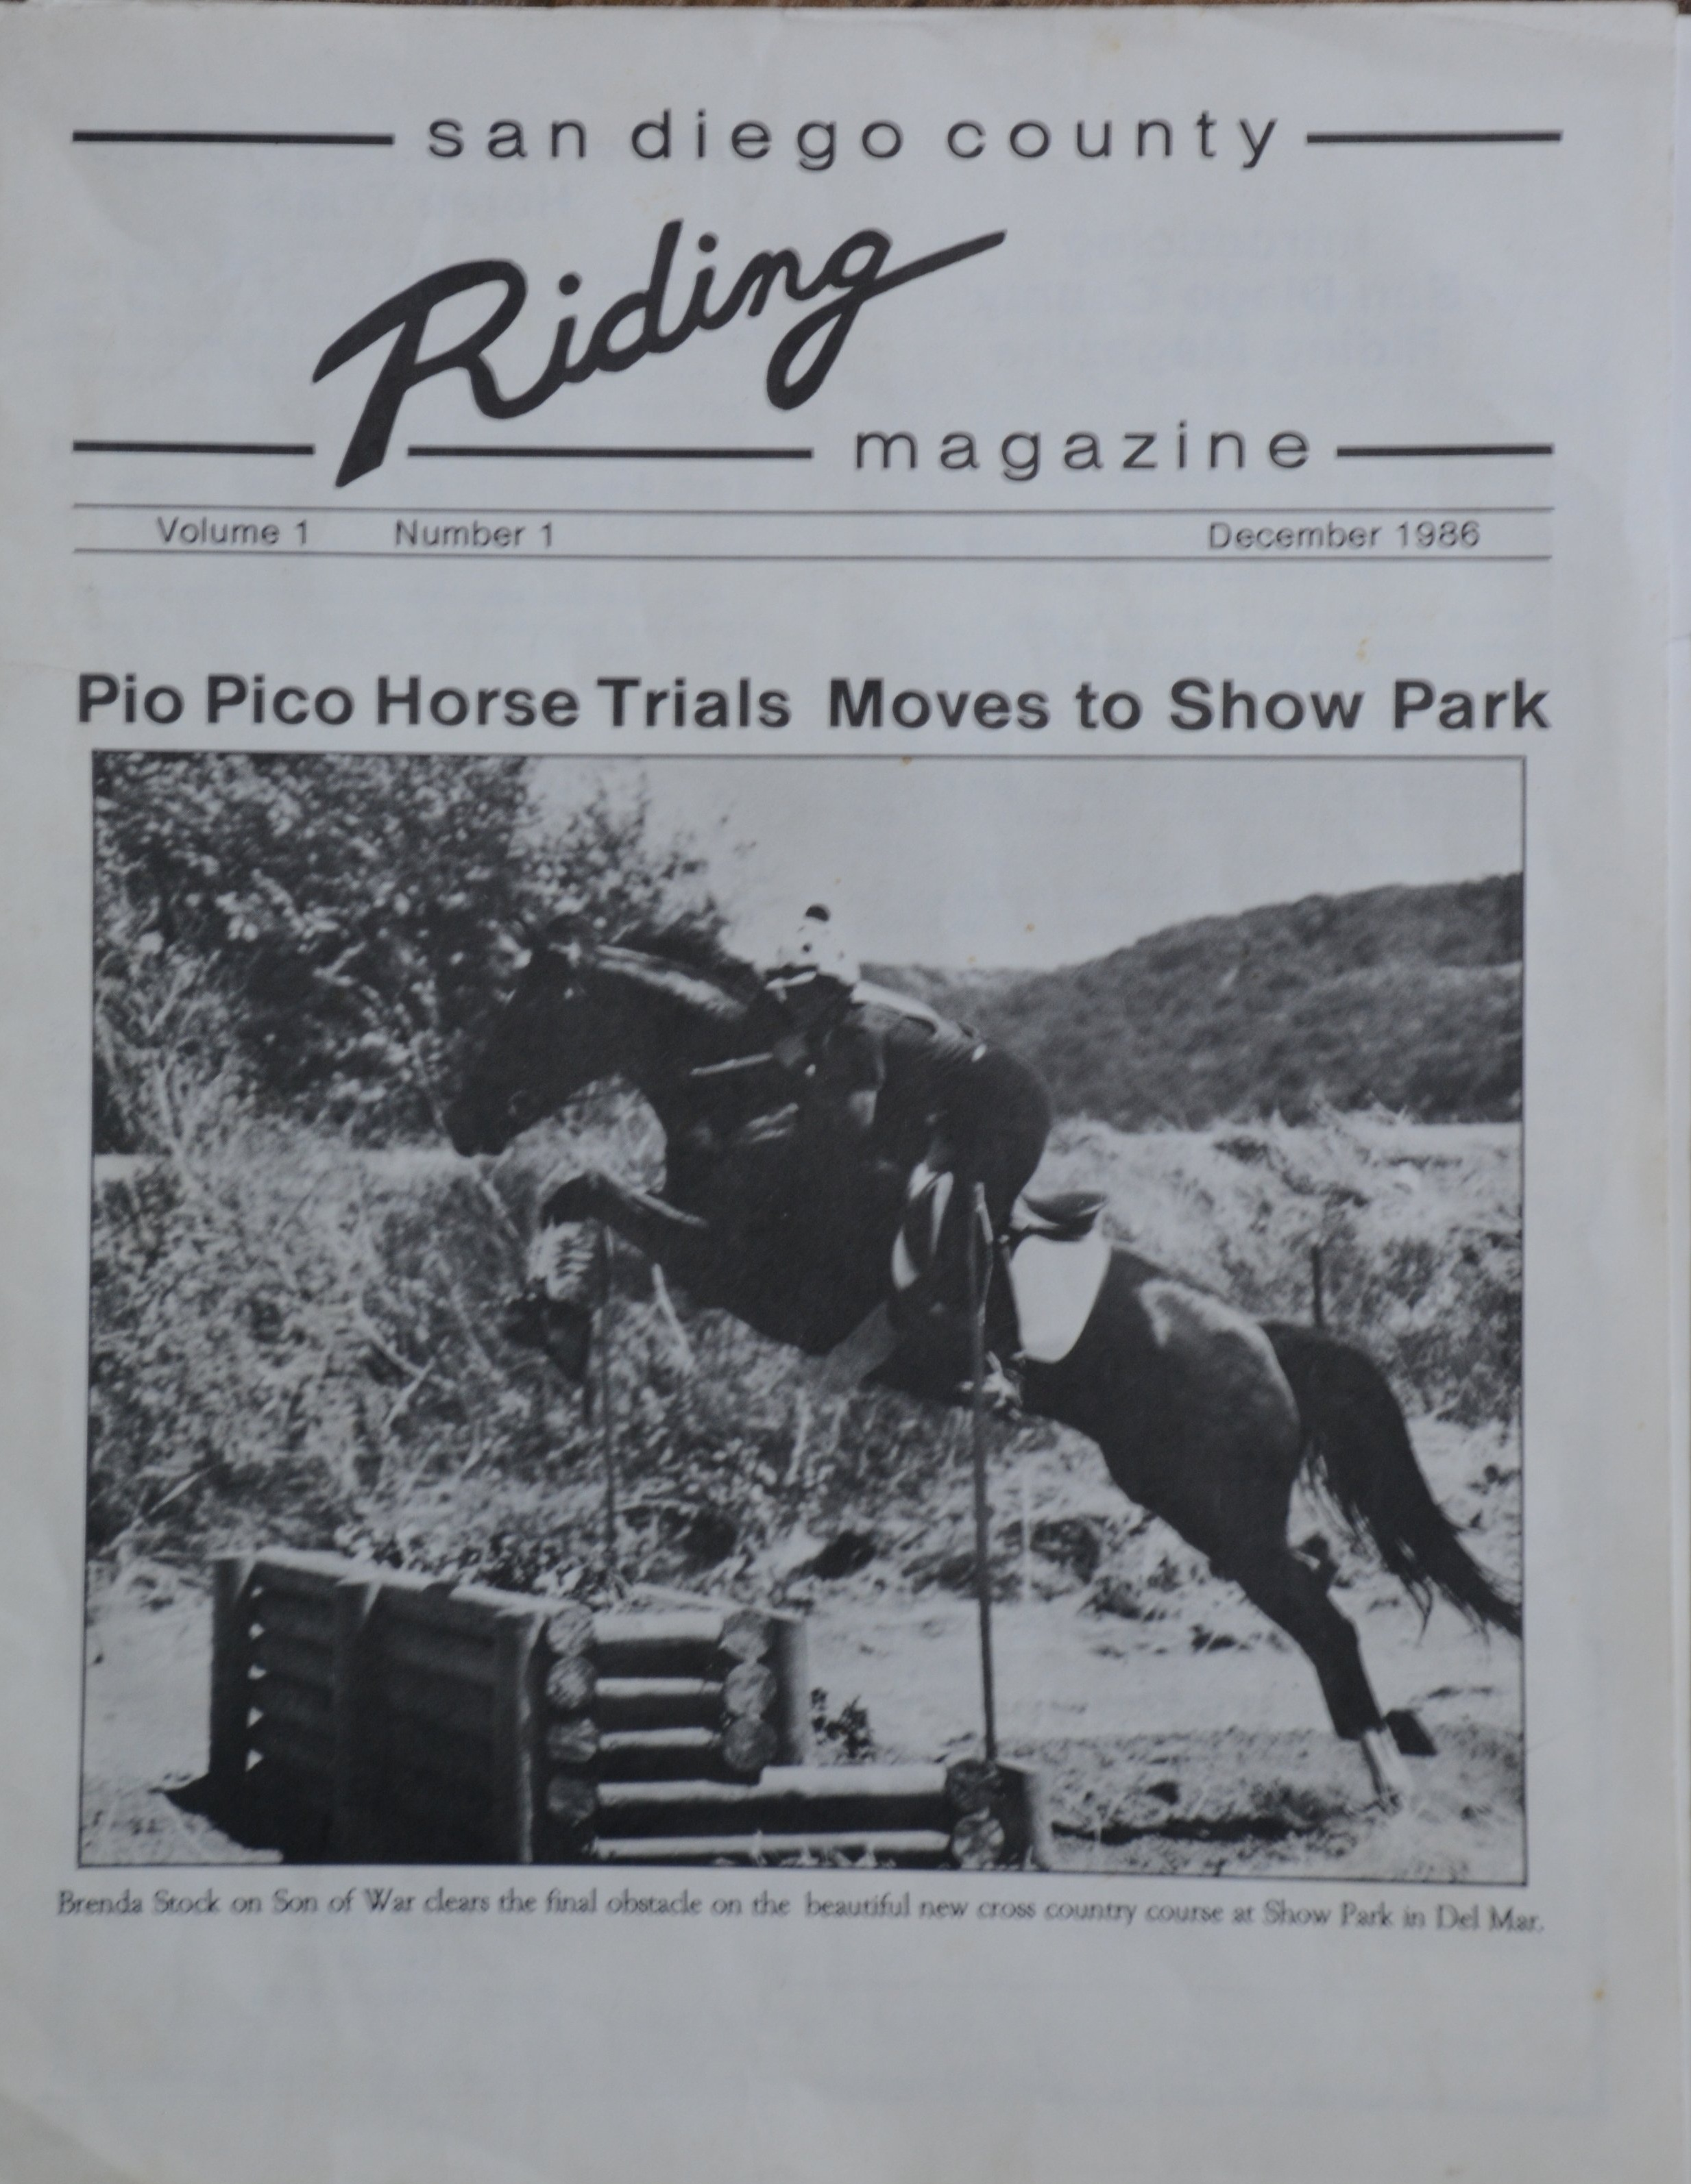 Cheryl hand drew her logo and shot her own printing plate negatives in 1986 when she started her magazine dedicated to San Diego dressage and eventing riders.